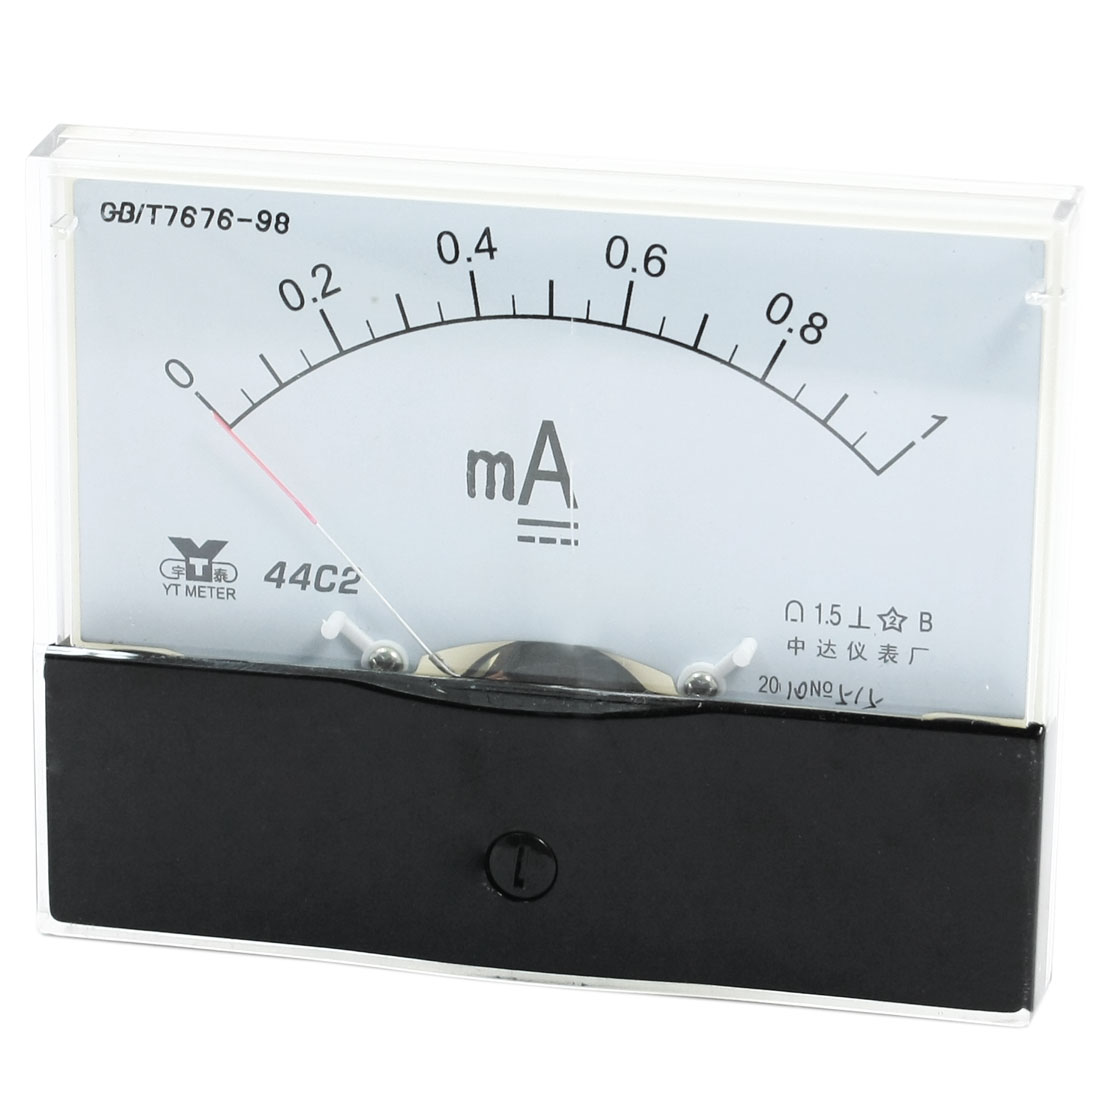 Rectangle Measurement Tool Analog Panel Ammeter Gauge DC 0 - 1mA Measuring Range 44C2